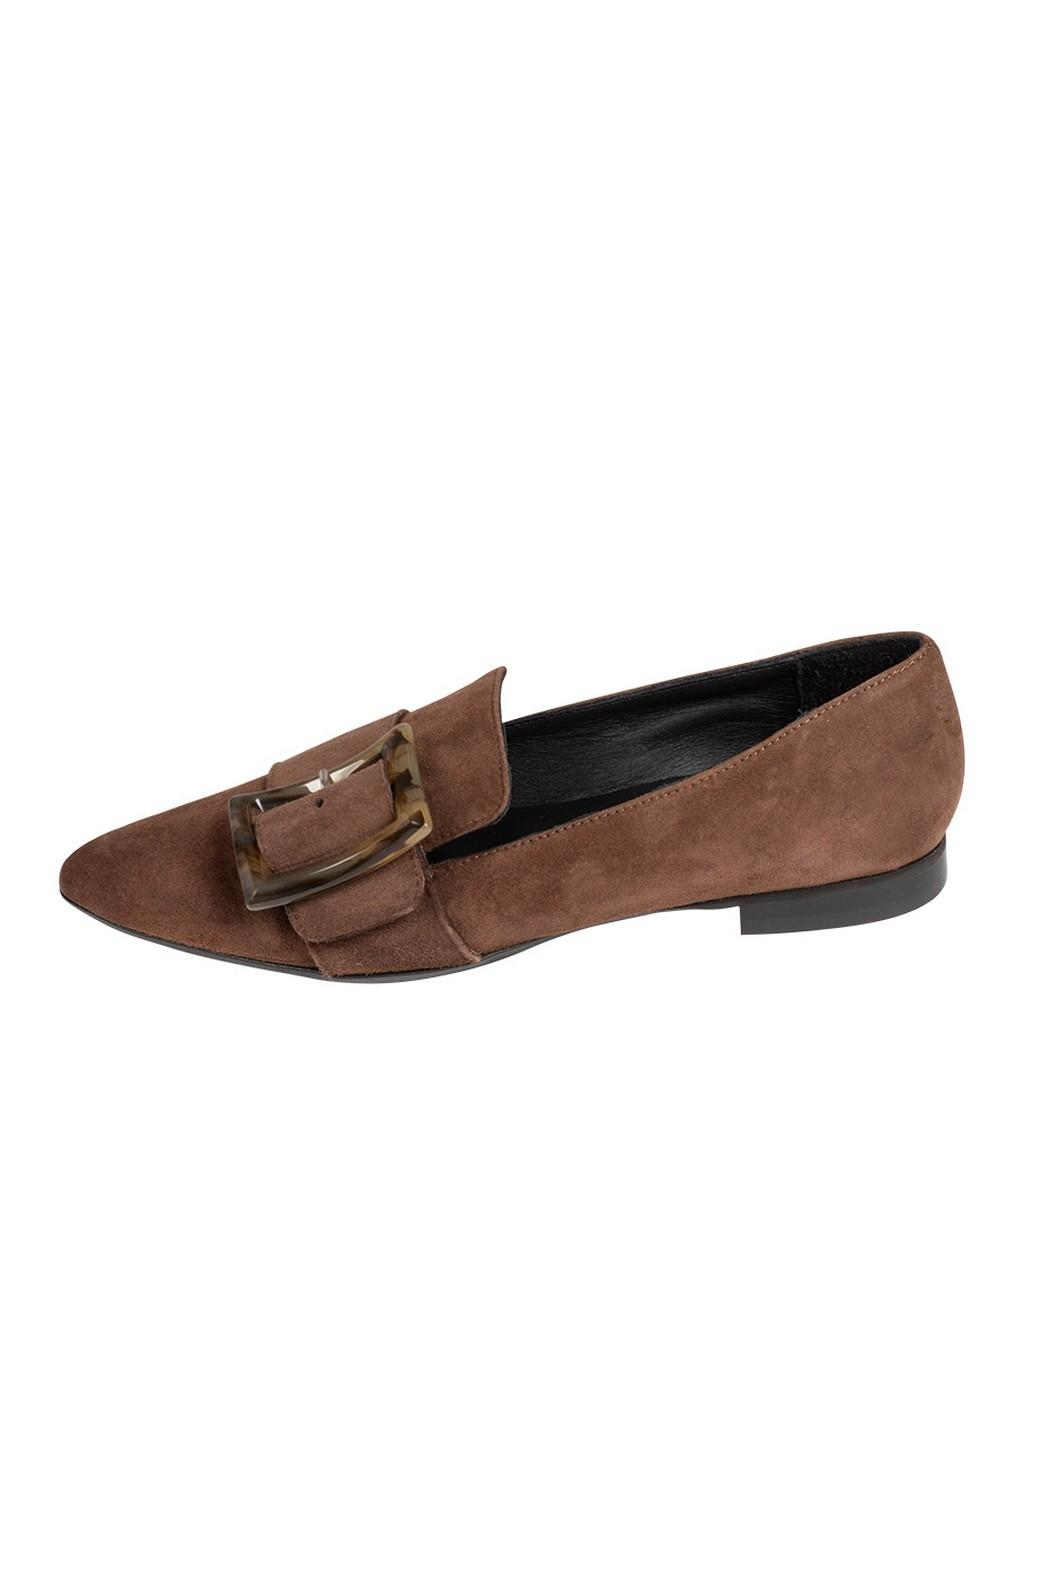 Pascucci Chocolate Suede Loafer - Main Image